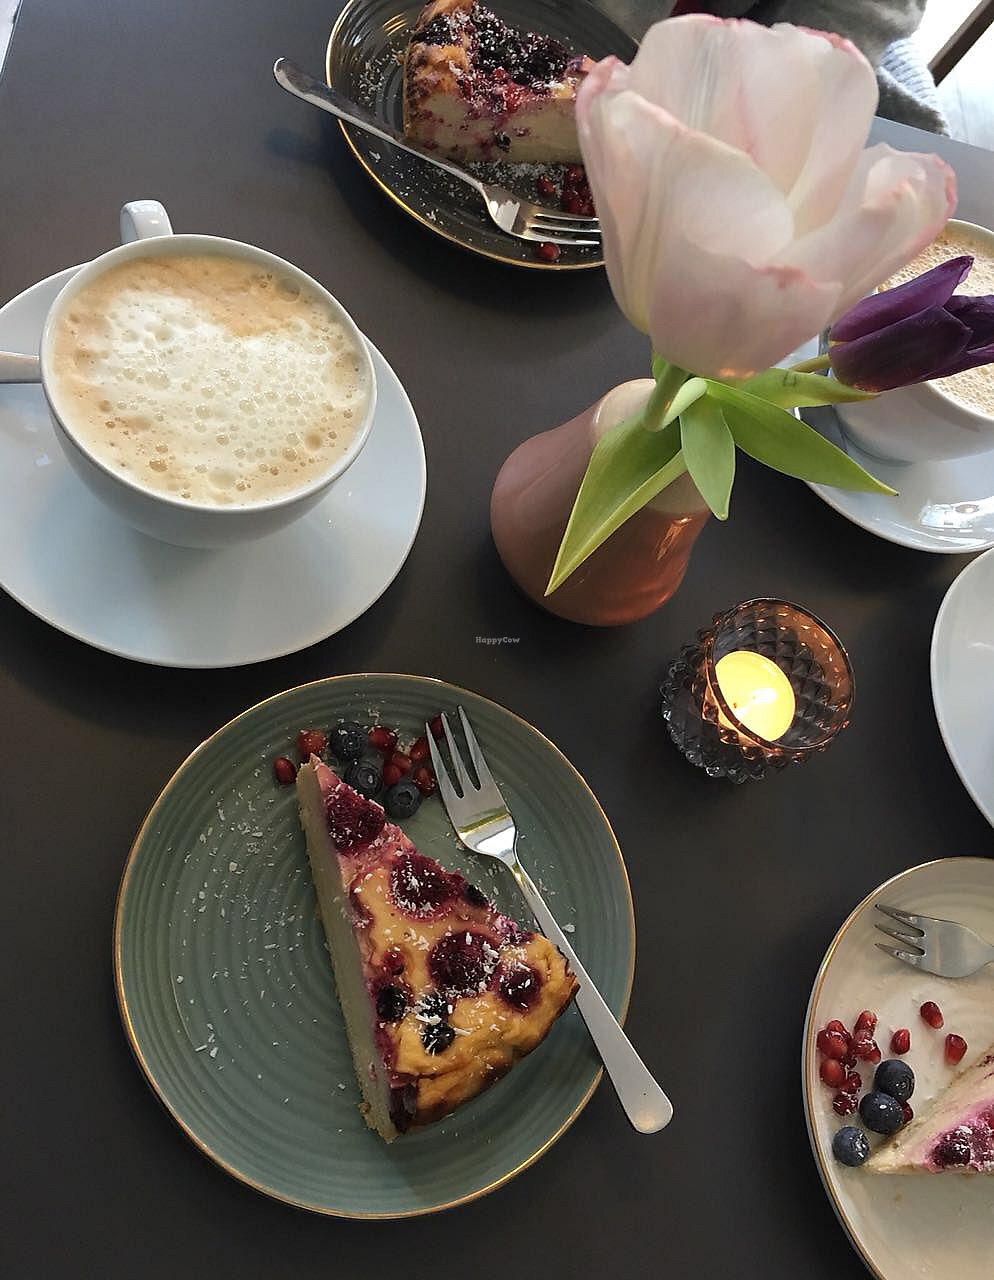 """Photo of SOUL Vegan Coffee Bar  by <a href=""""/members/profile/Charly0993"""">Charly0993</a> <br/>Café Latte + Cheezcake <br/> February 17, 2018  - <a href='/contact/abuse/image/98256/360255'>Report</a>"""